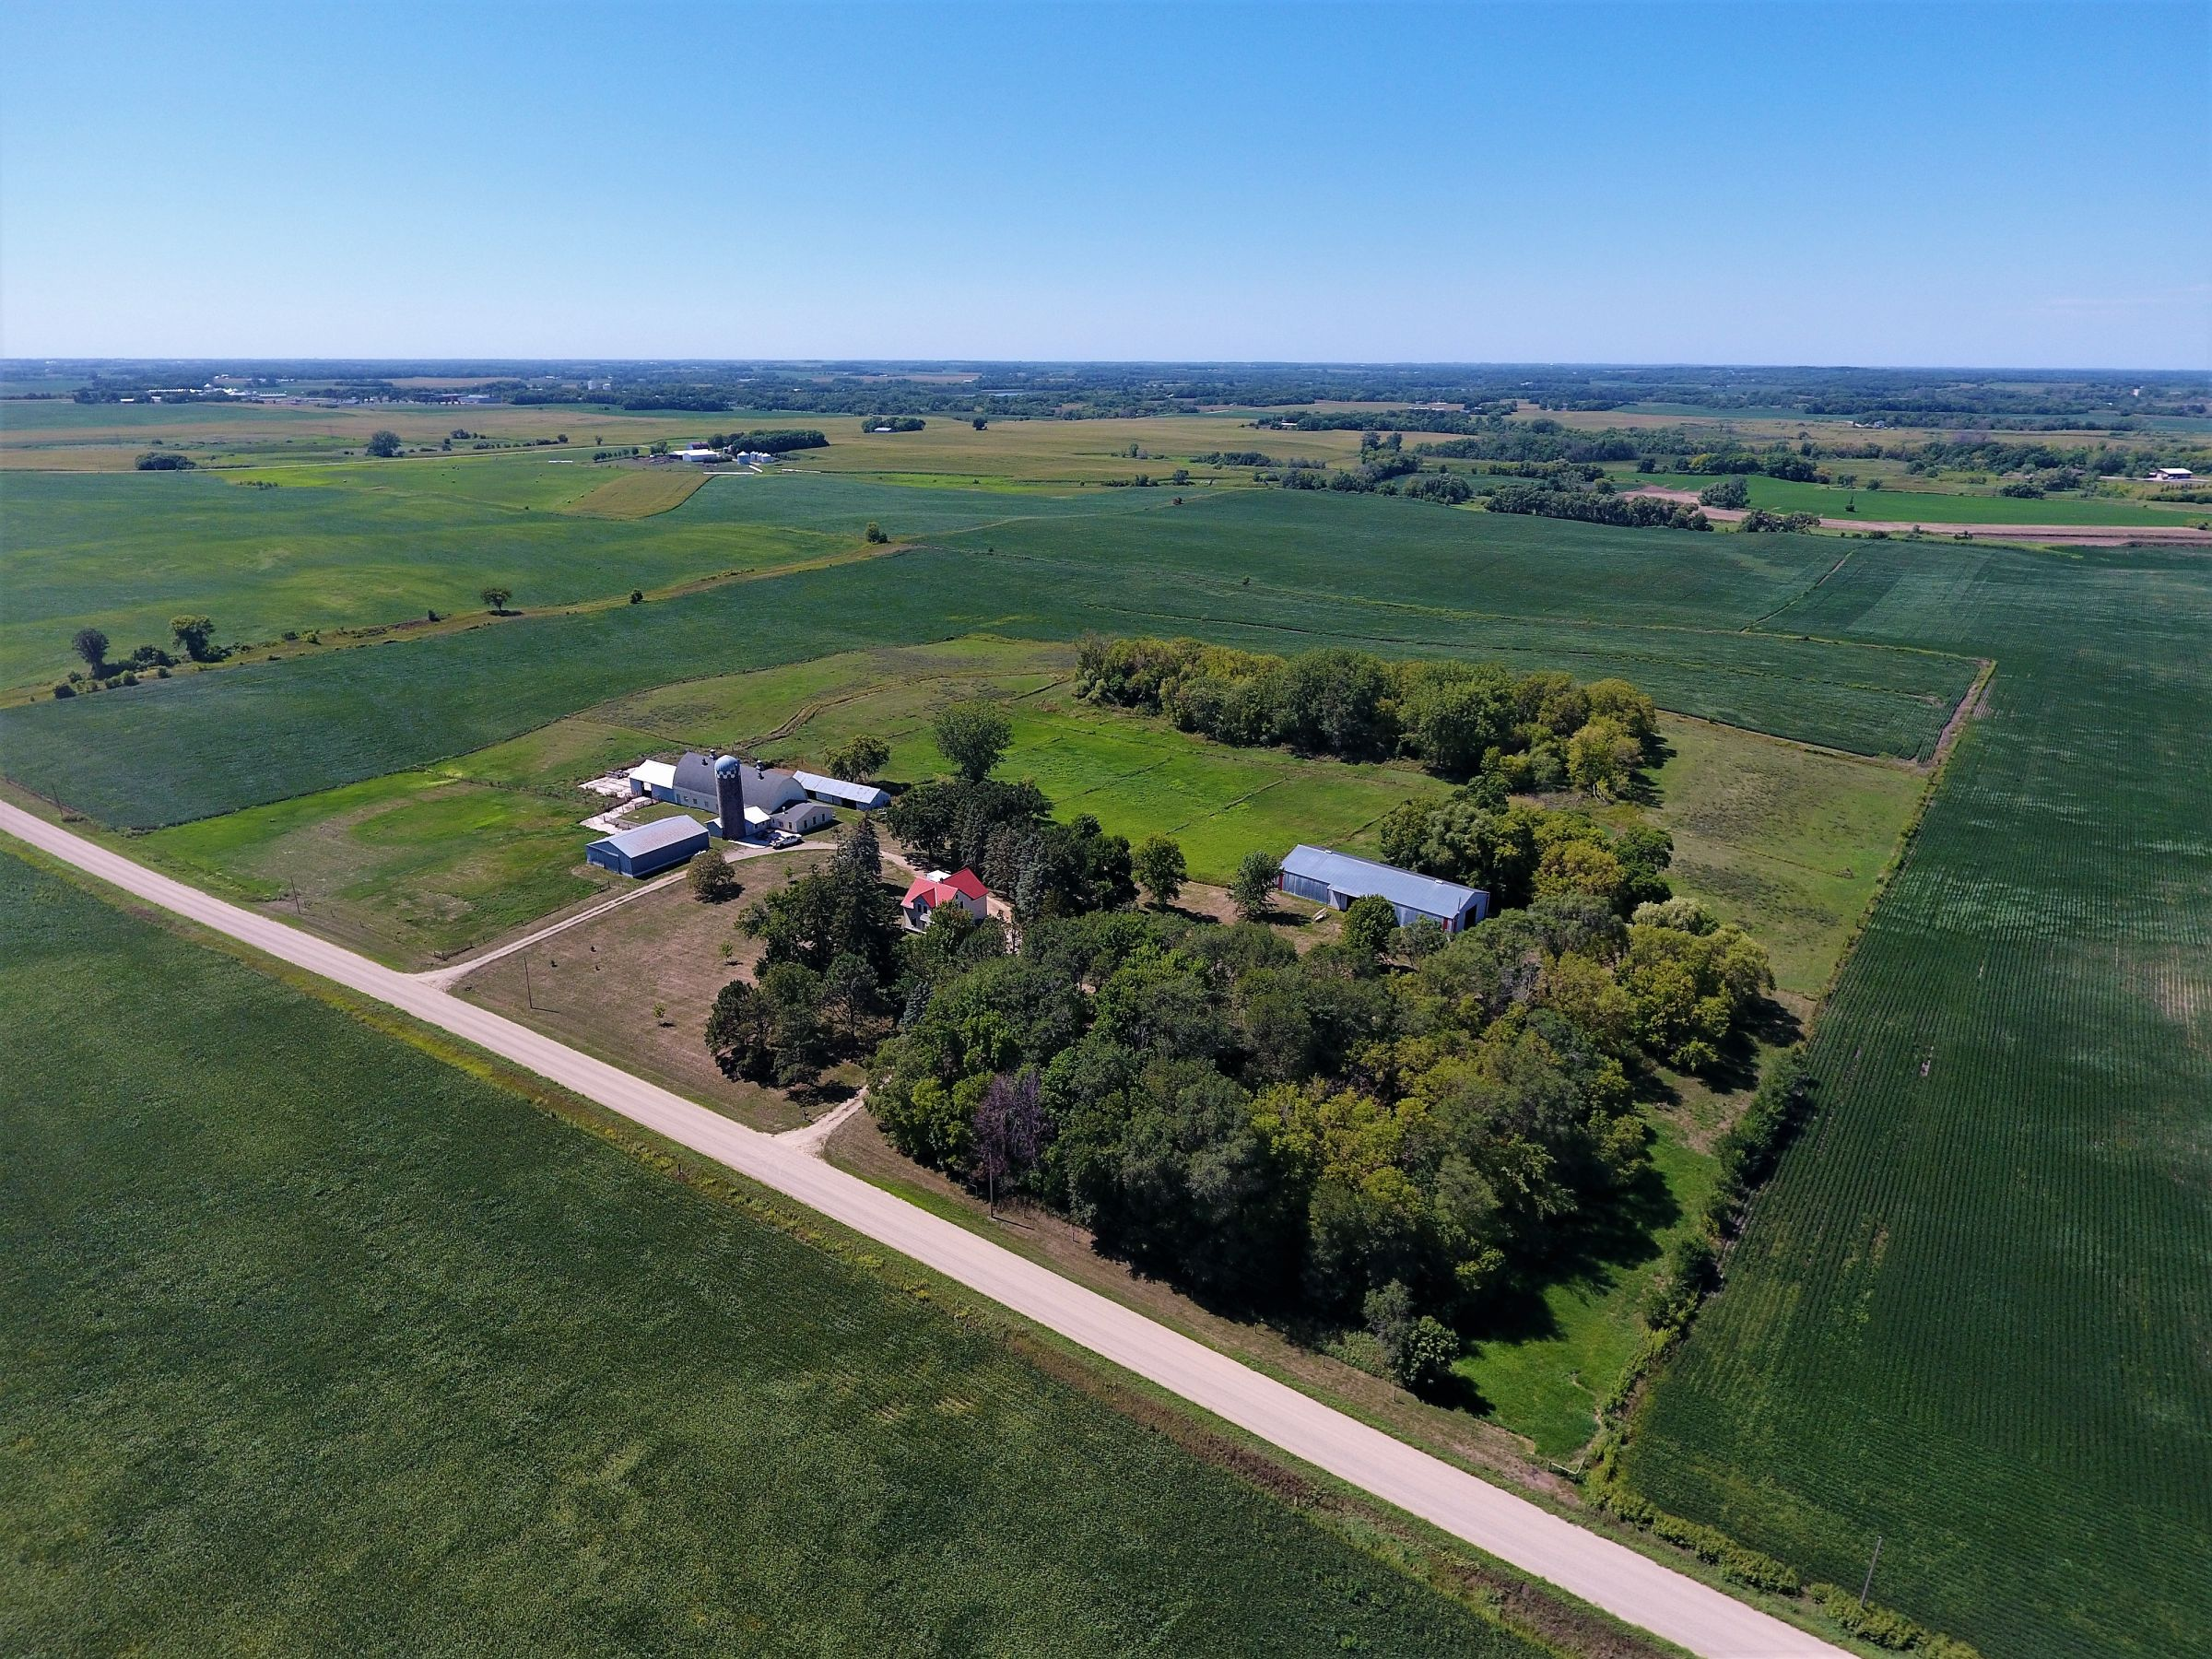 residential-wright-county-minnesota-0-acres-listing-number-15779-3-2021-09-28-001106.JPG